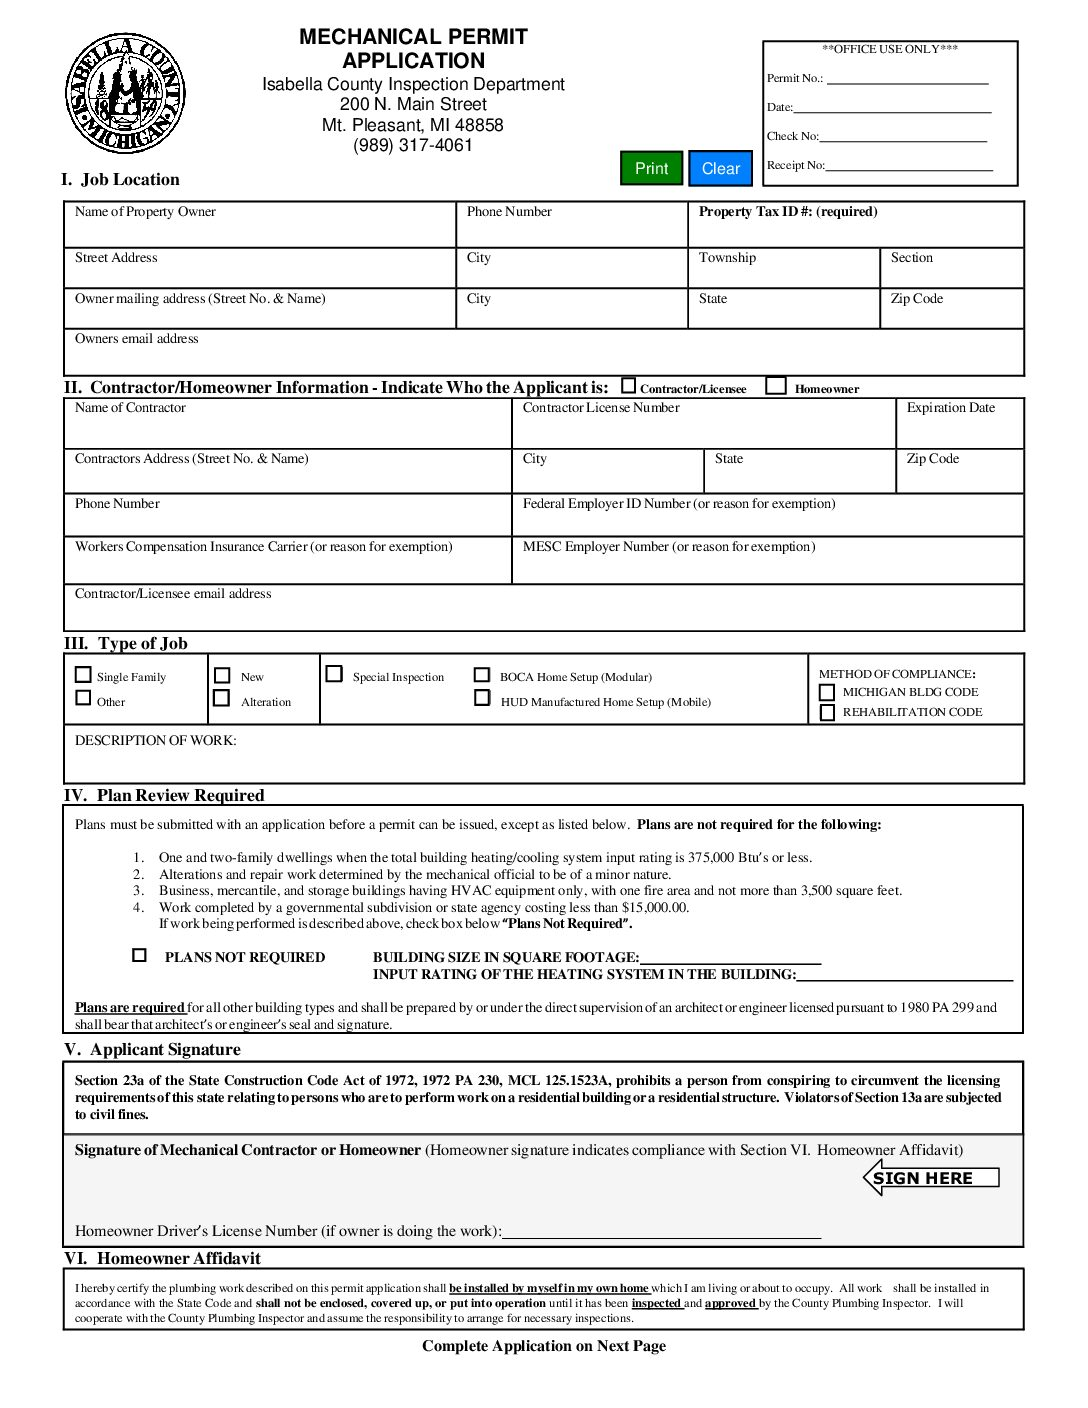 preview image of first page Mechanical Permit Application